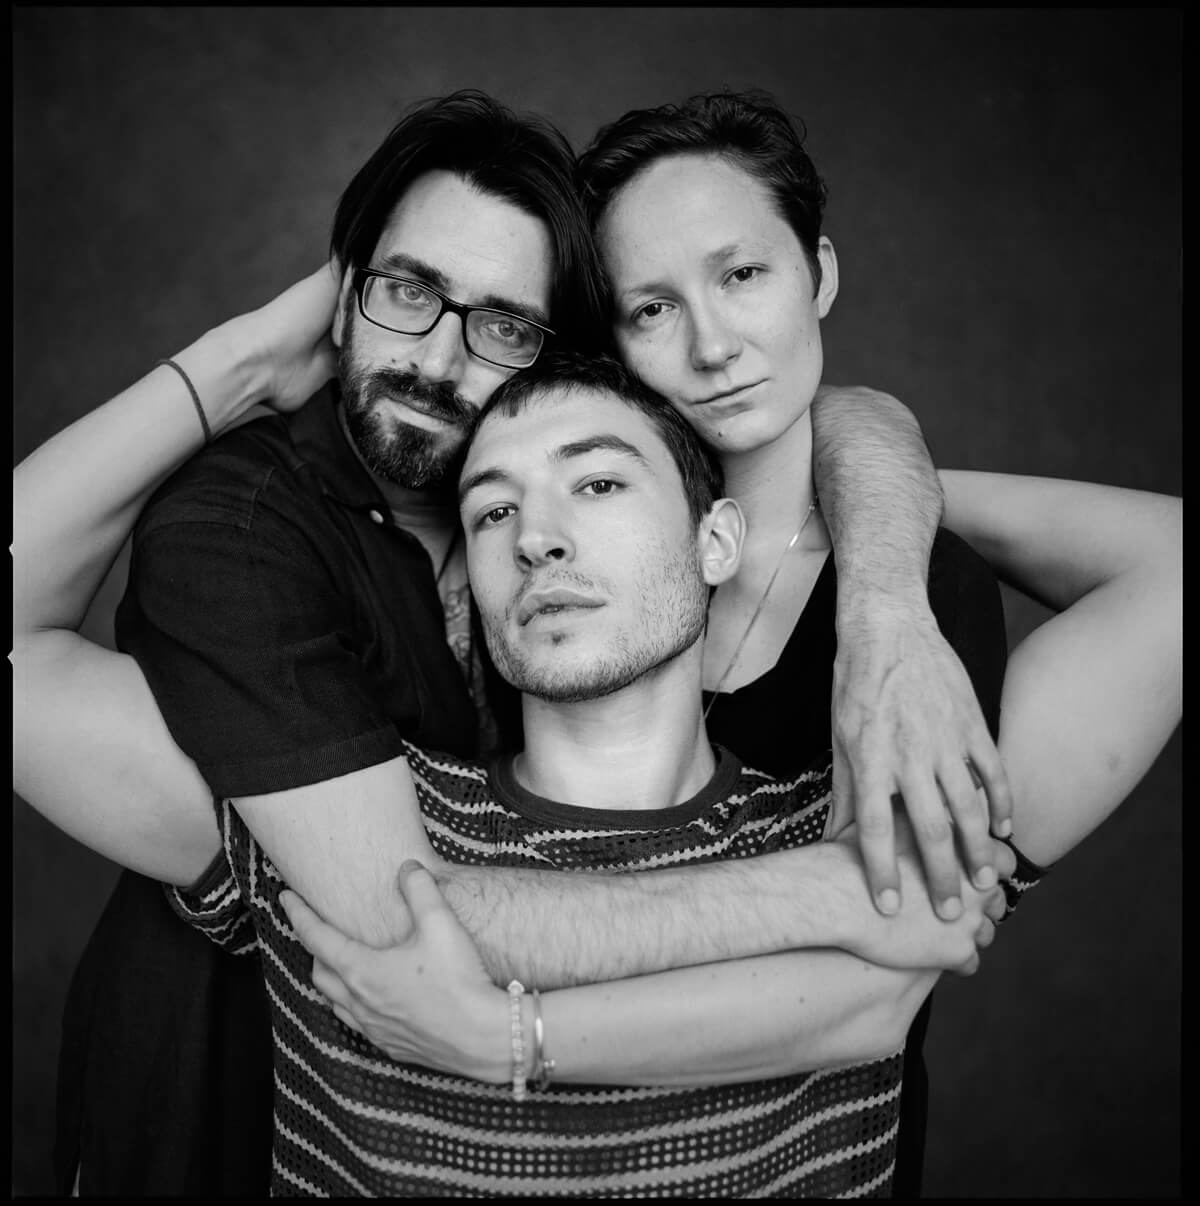 Conoce a Sons of an Illustrious Father, la banda genrequeer y rebelde de Ezra Miller